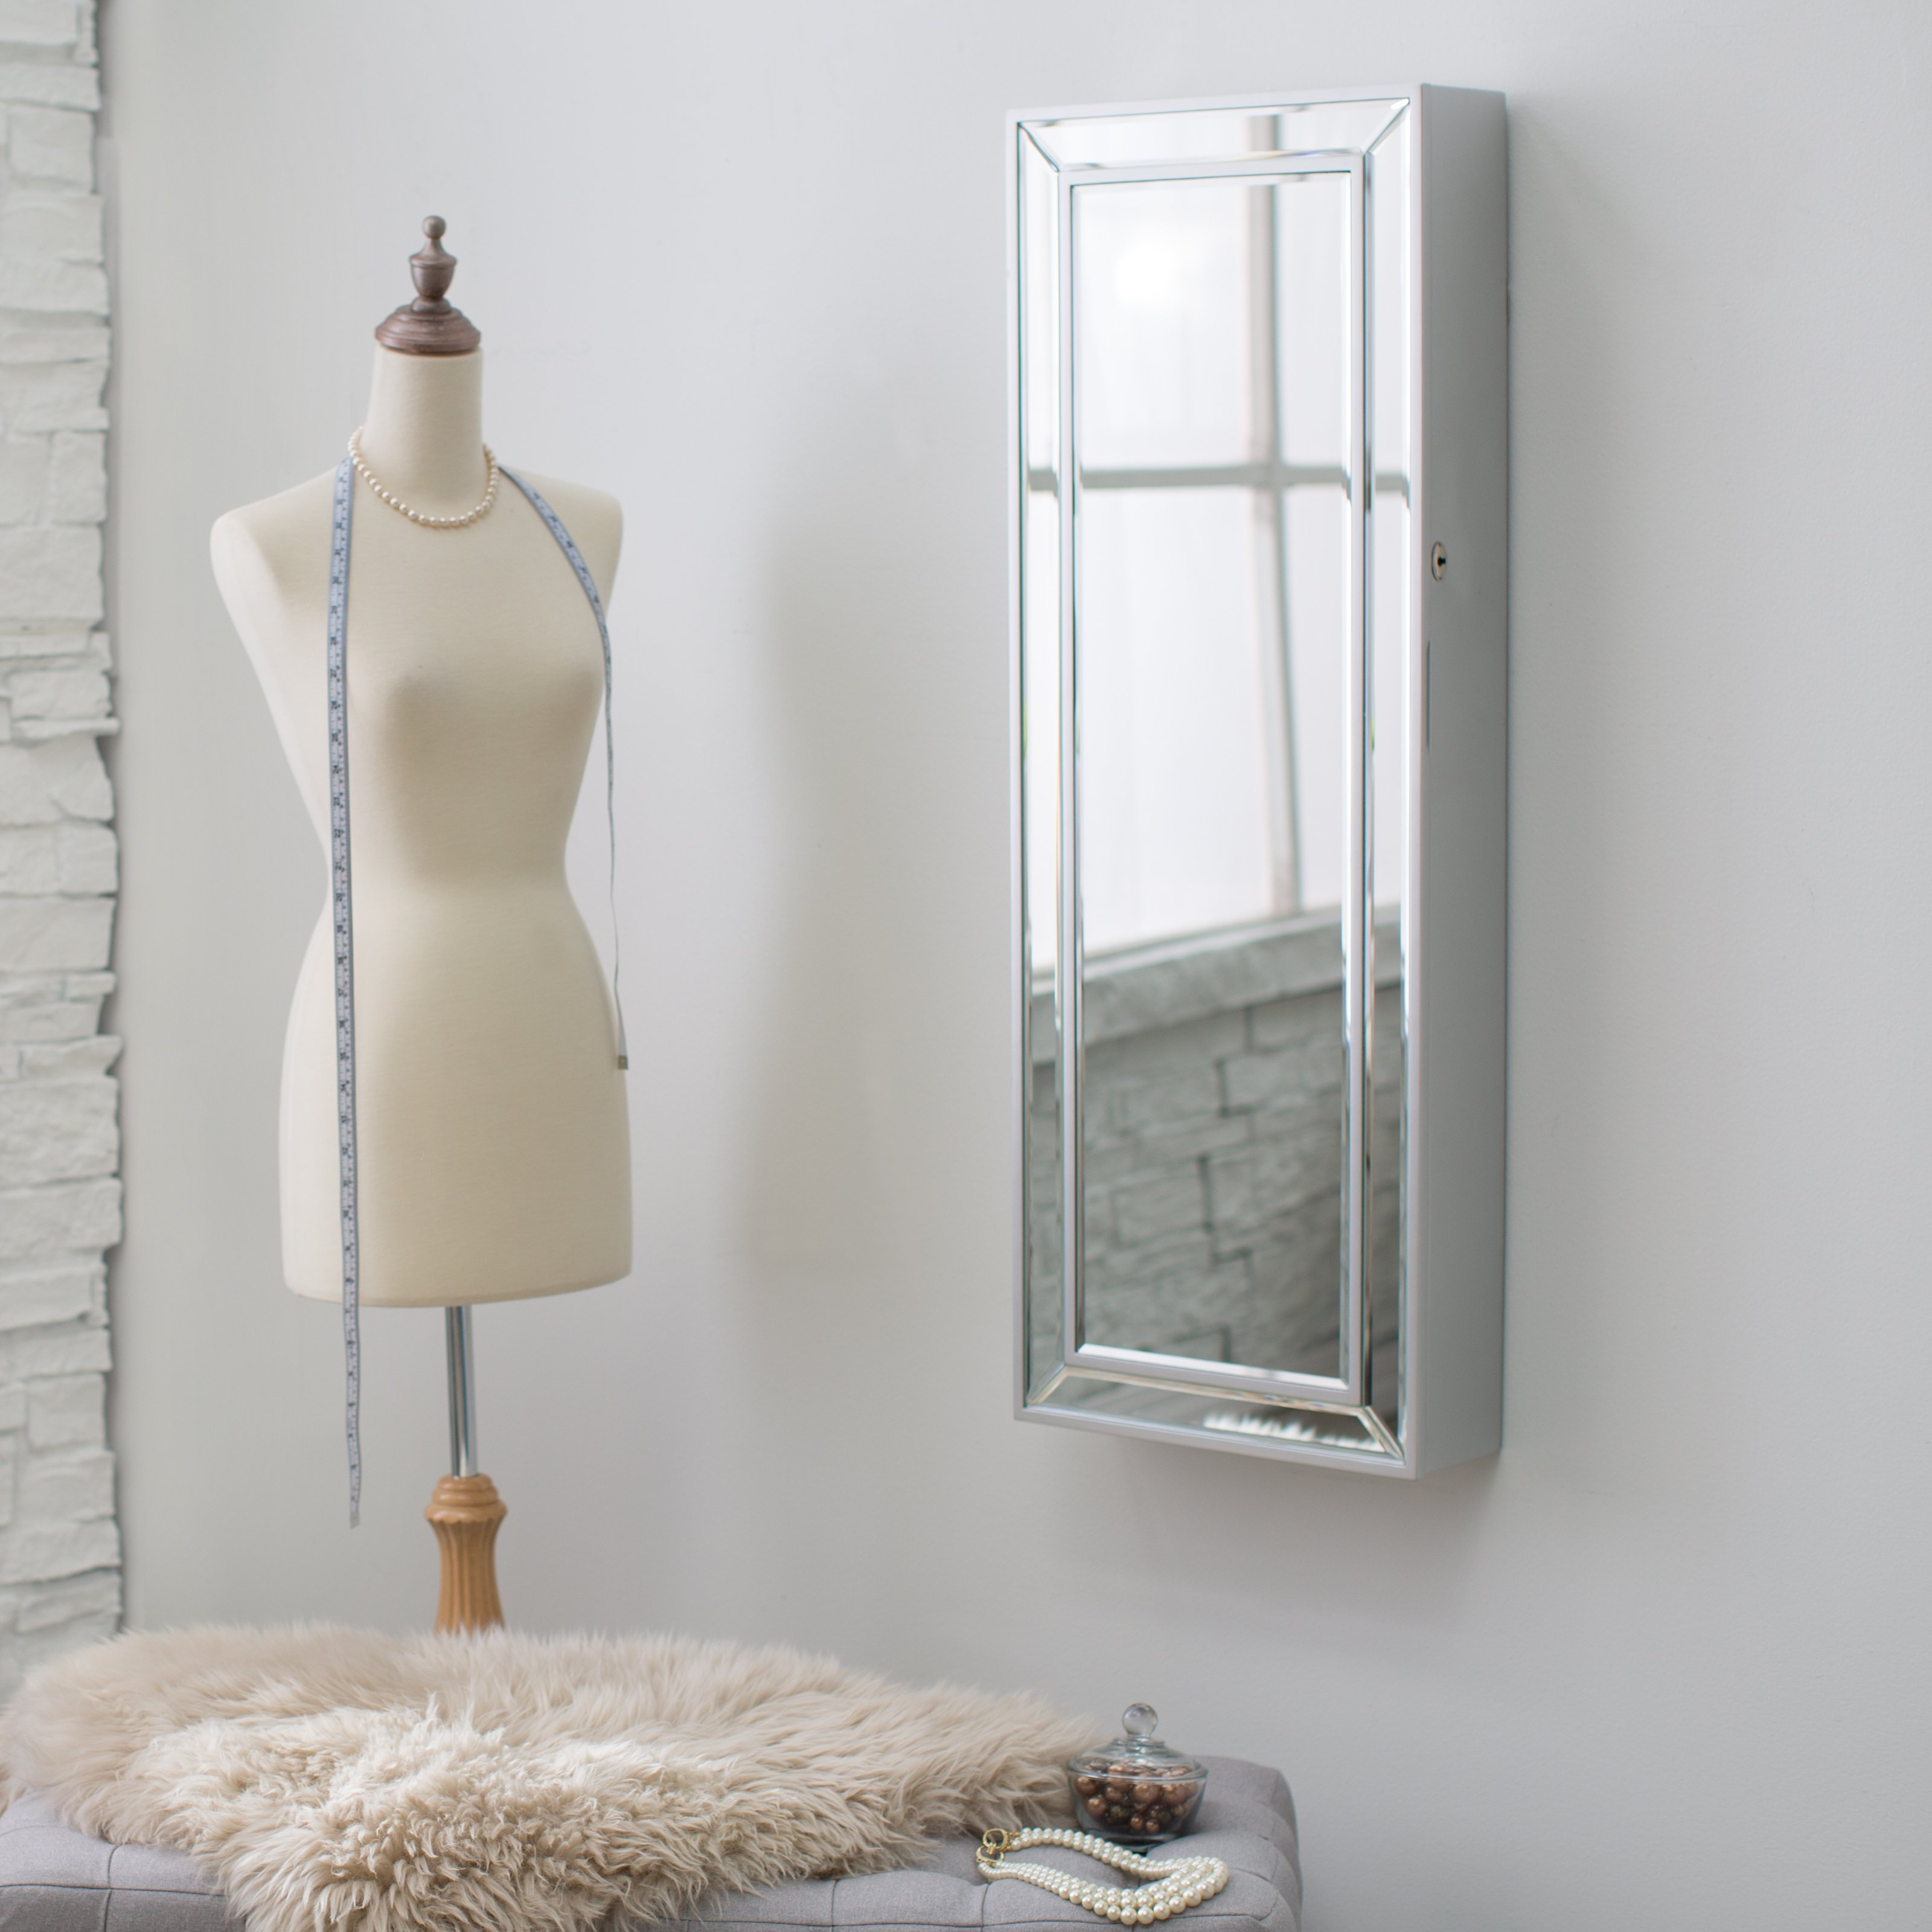 Amazing Design Wall Mounted Full Length Mirror Idea 11 Decorative For Decorative Full Length Mirror (Image 1 of 15)